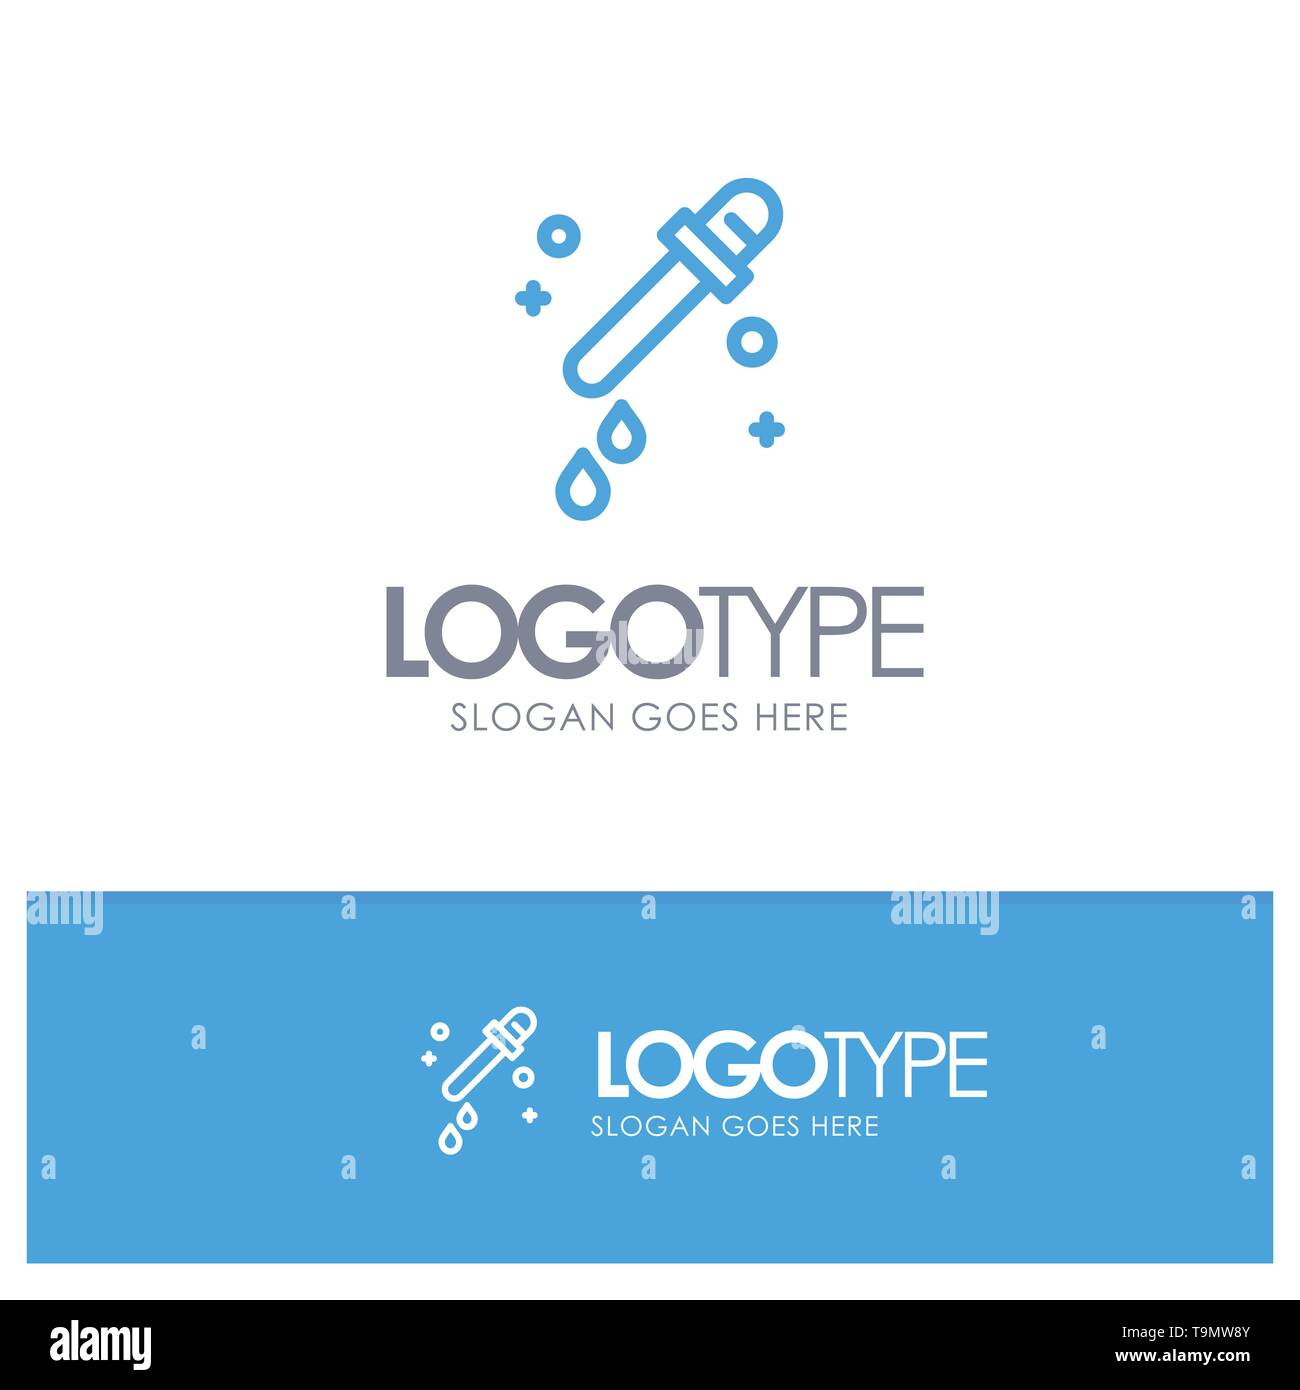 Dropper, Pipette, Science Blue outLine Logo with place for tagline - Stock Image